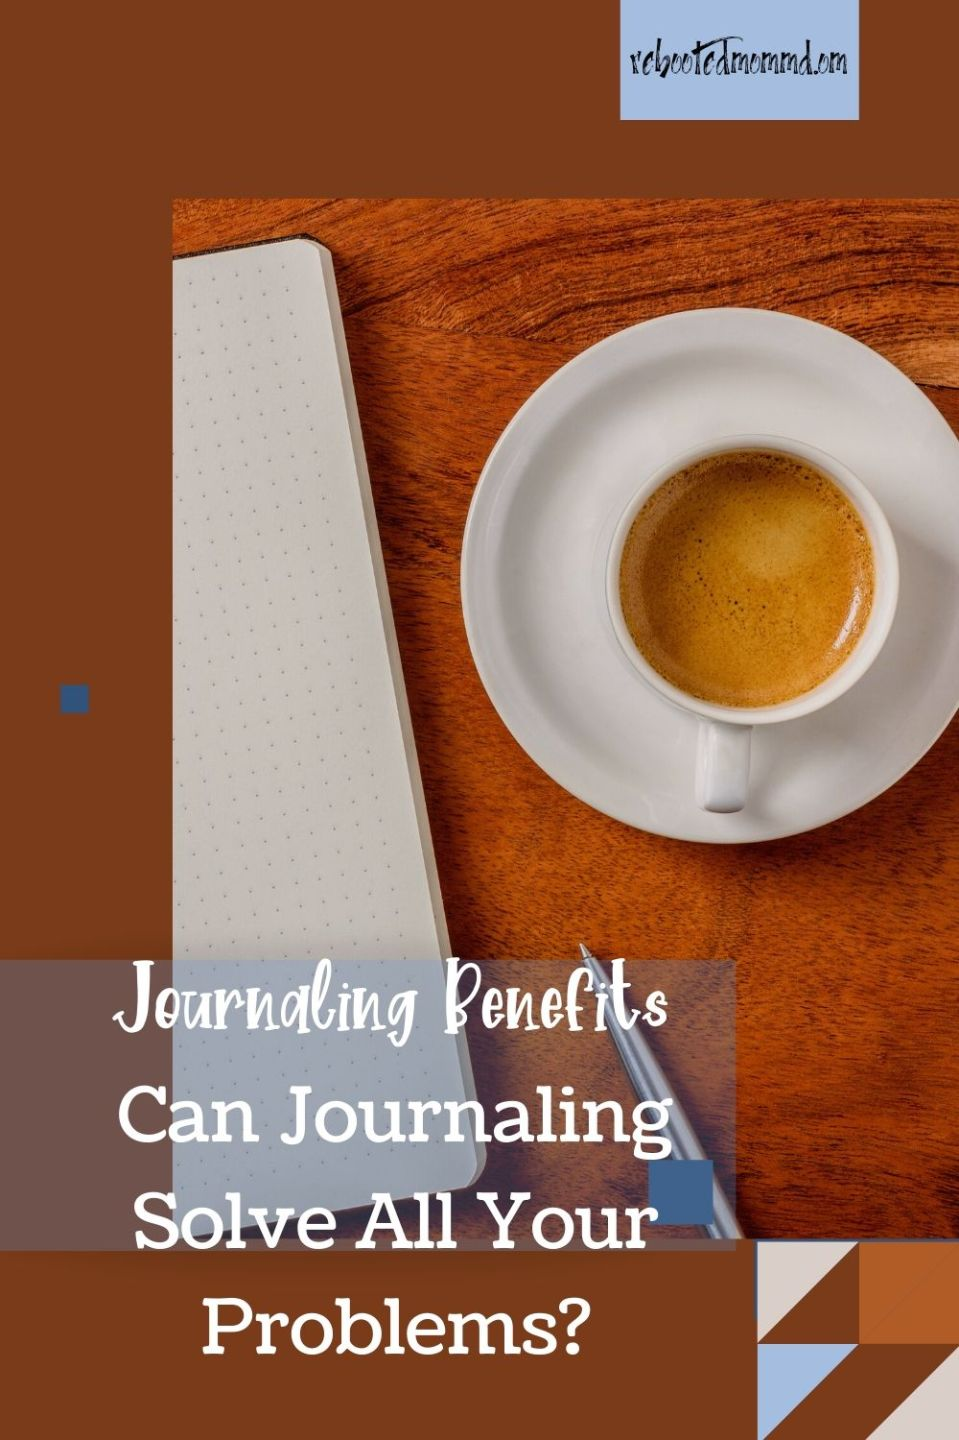 Can Journaling Solve All Your Problems?